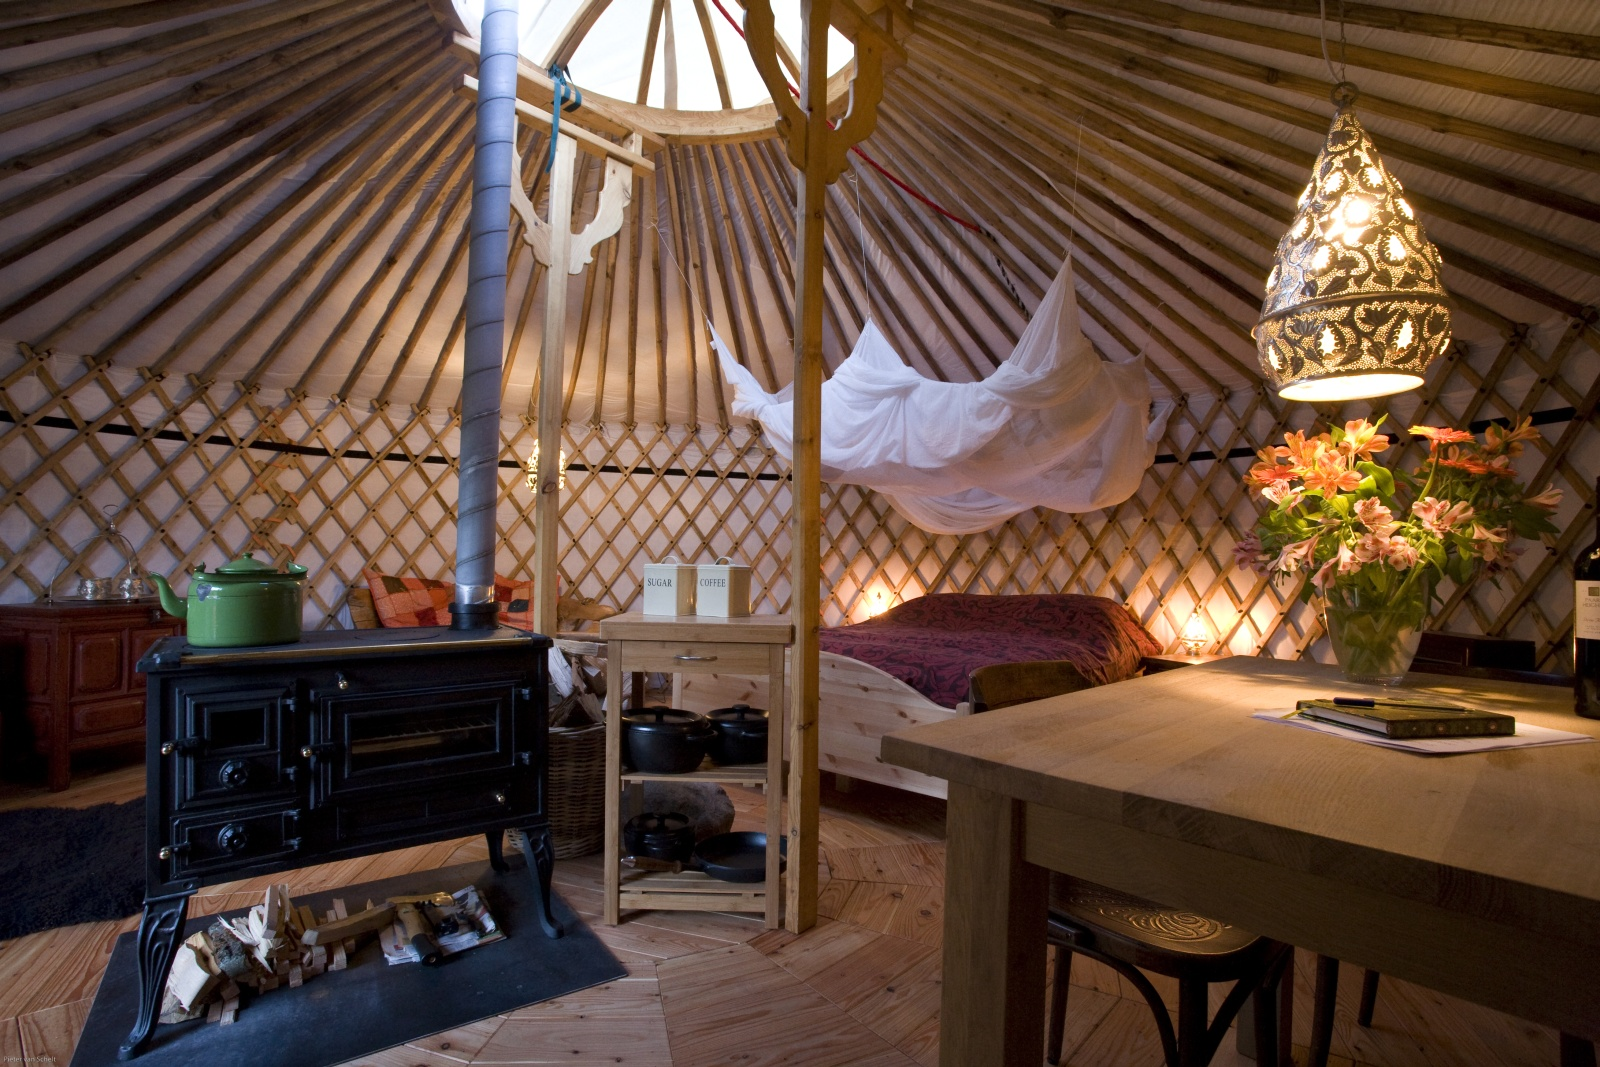 Texel Yurts  Warm and Inviting Yurt Camp